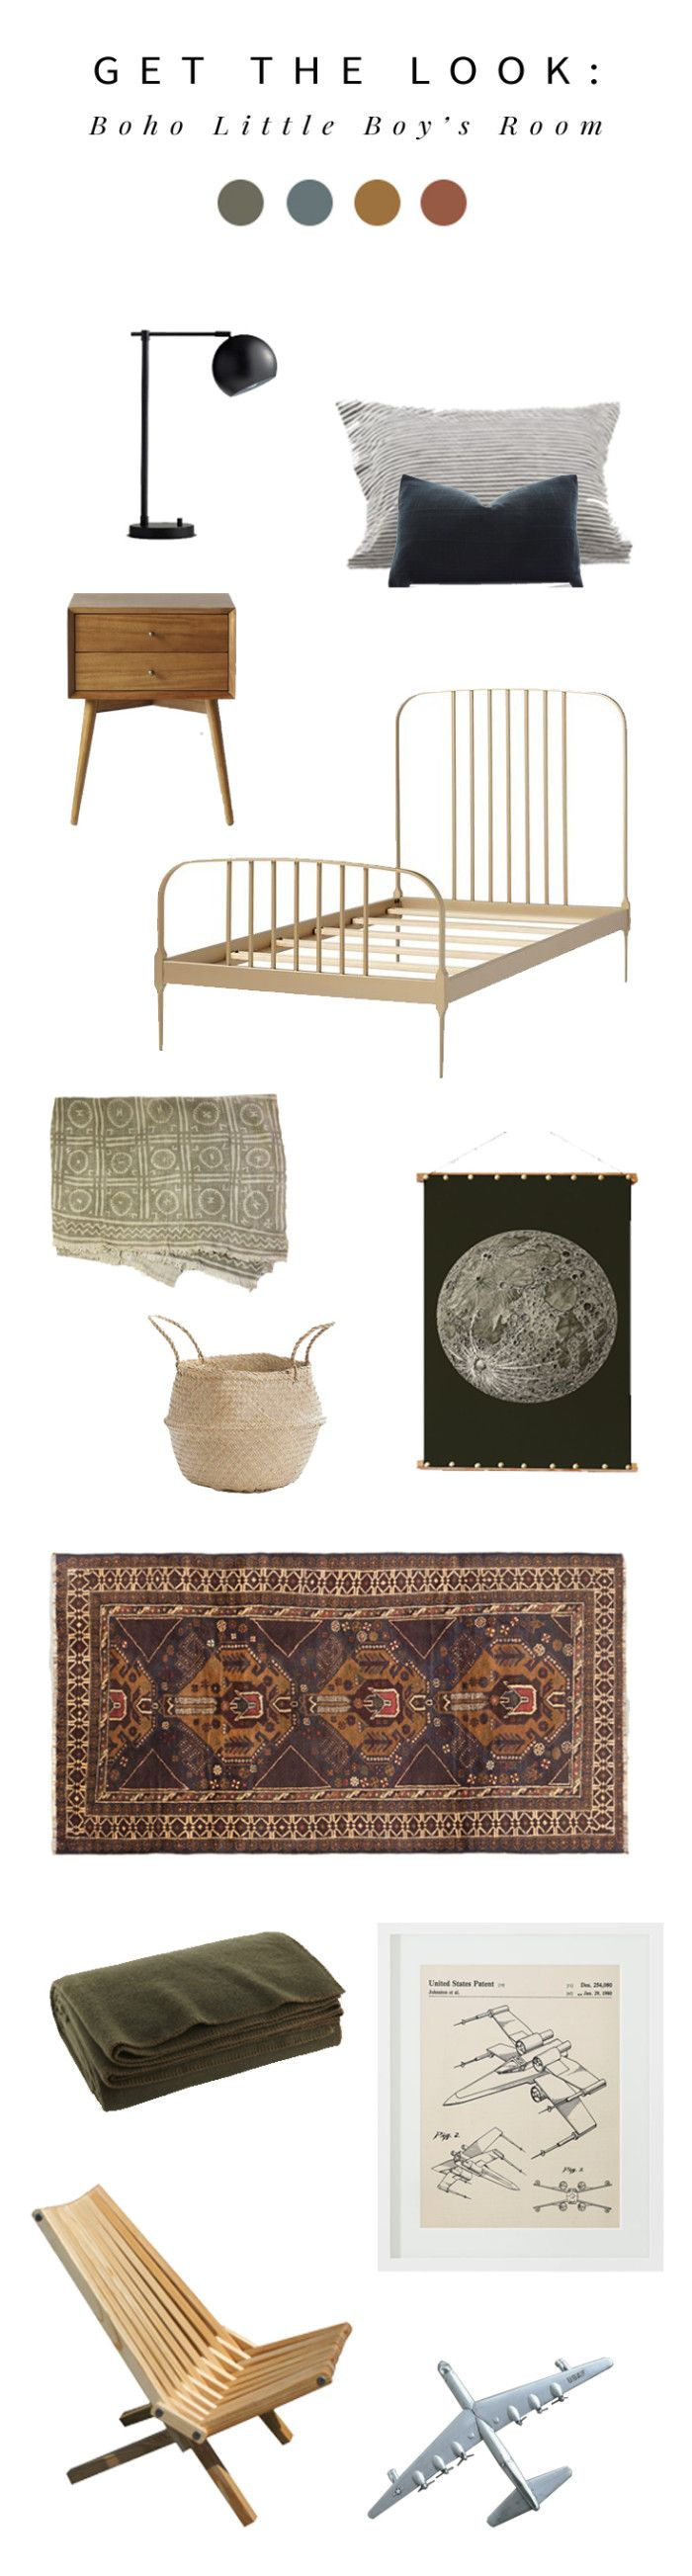 Interior stylist Anna Smith of Annabode + Co. shares the design for her bohemian little boy's room, along with how to get the look yourself!